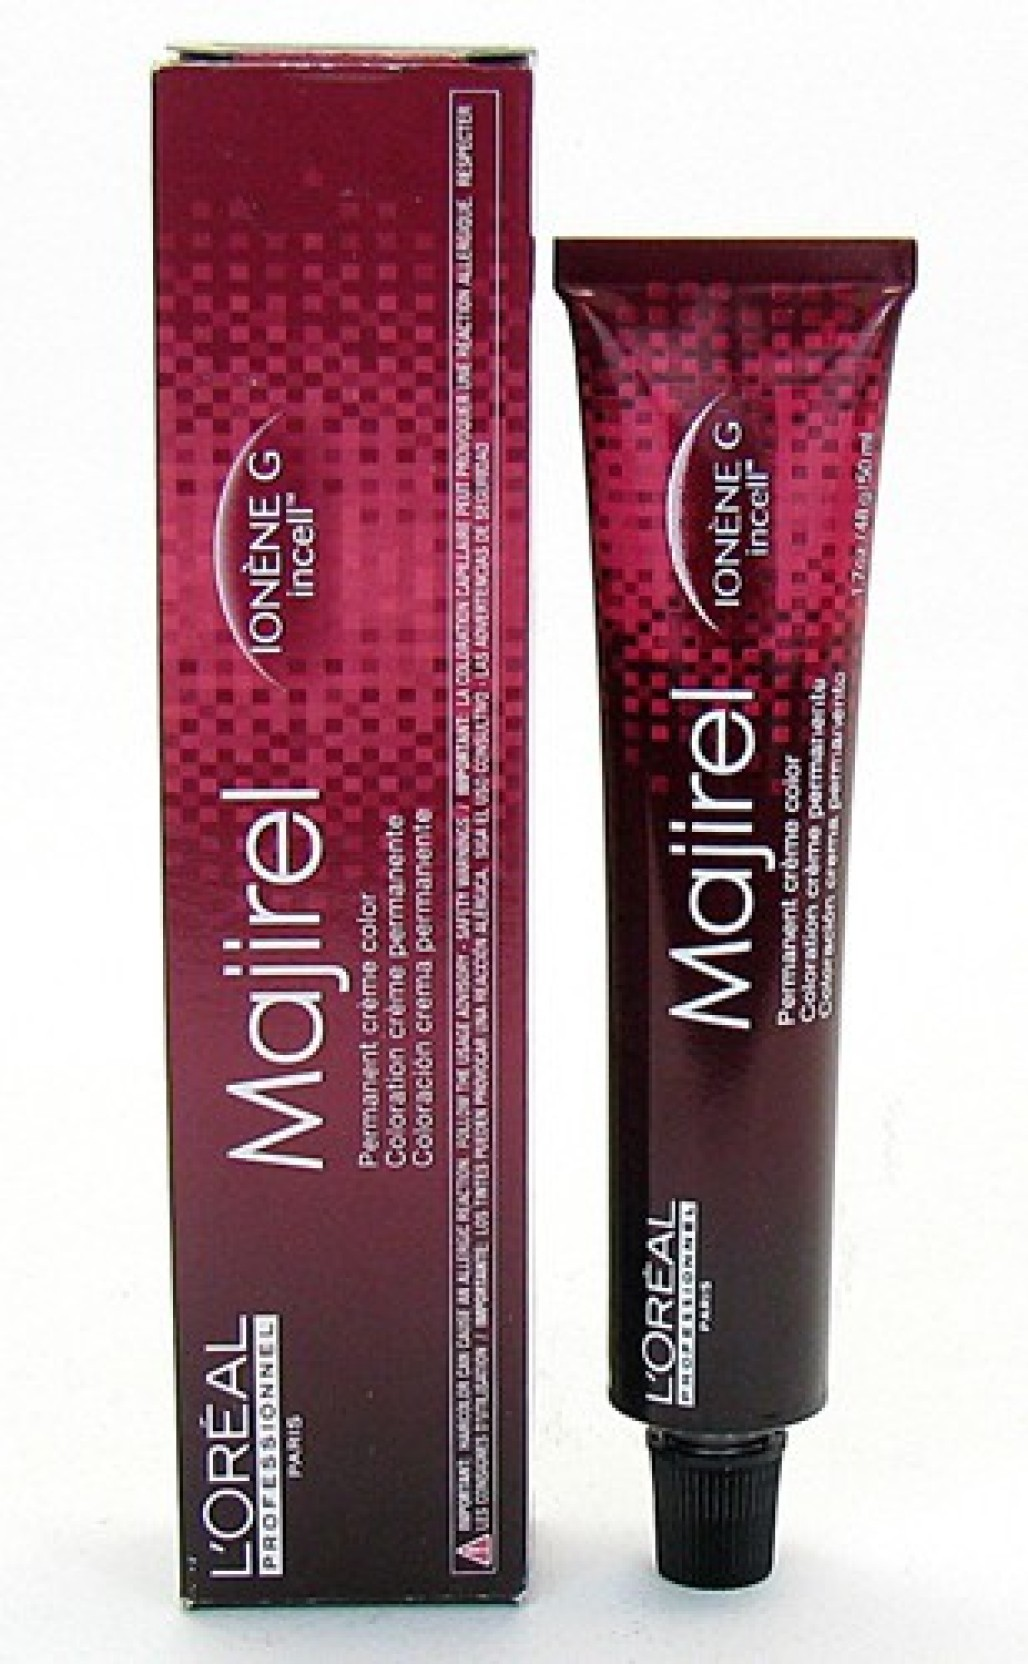 Loreal Paris Majirel Hair Color Violet Price In India Majirouge Beauty Colouring Cream 50ml Home